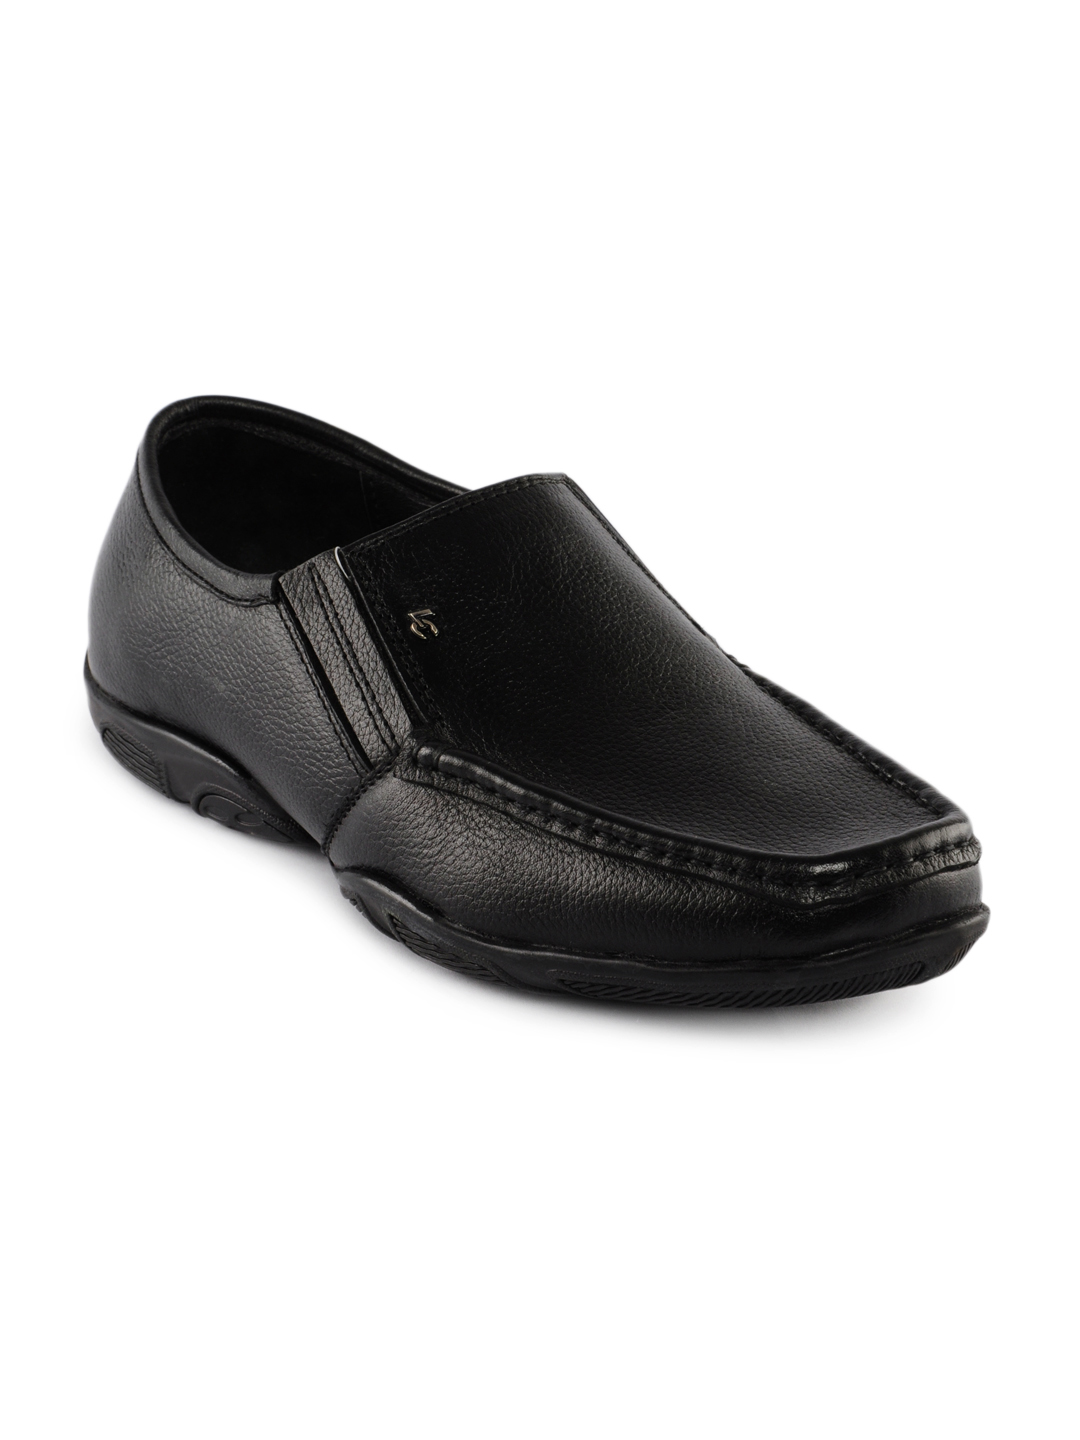 Lee Cooper Men Black Shoes